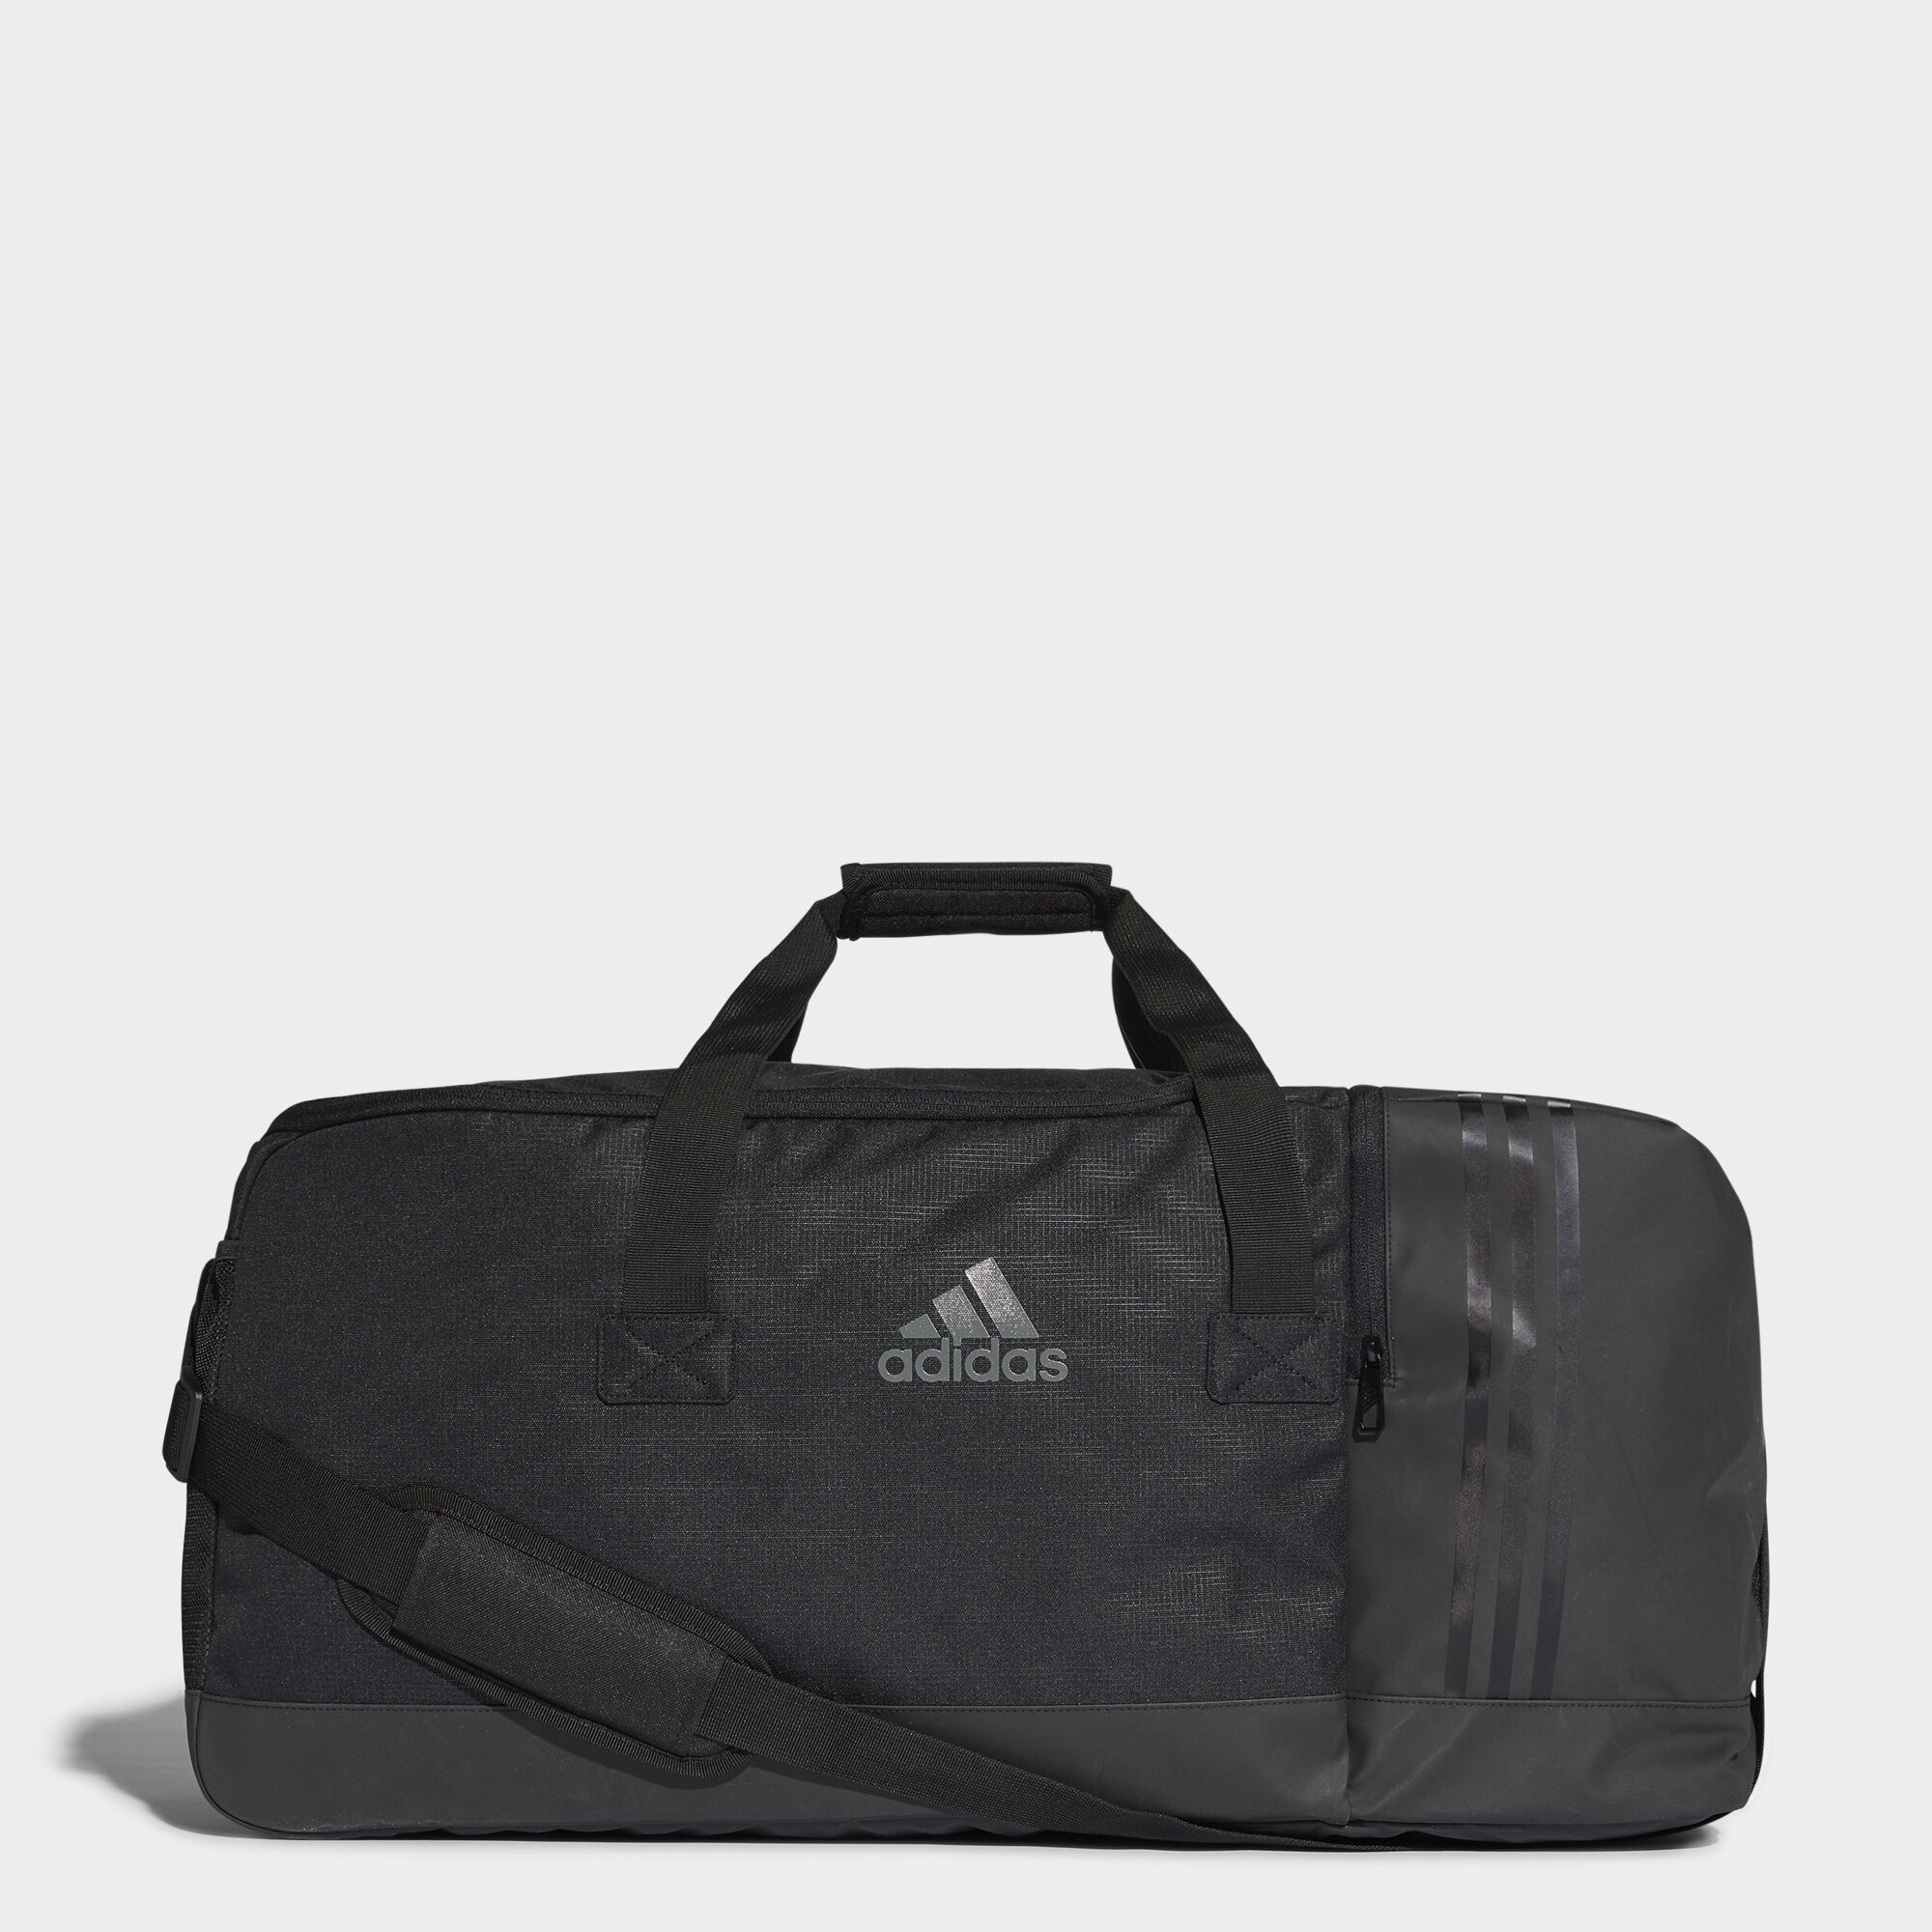 38f377bc5fb Buy adidas airline bag   OFF55% Discounted